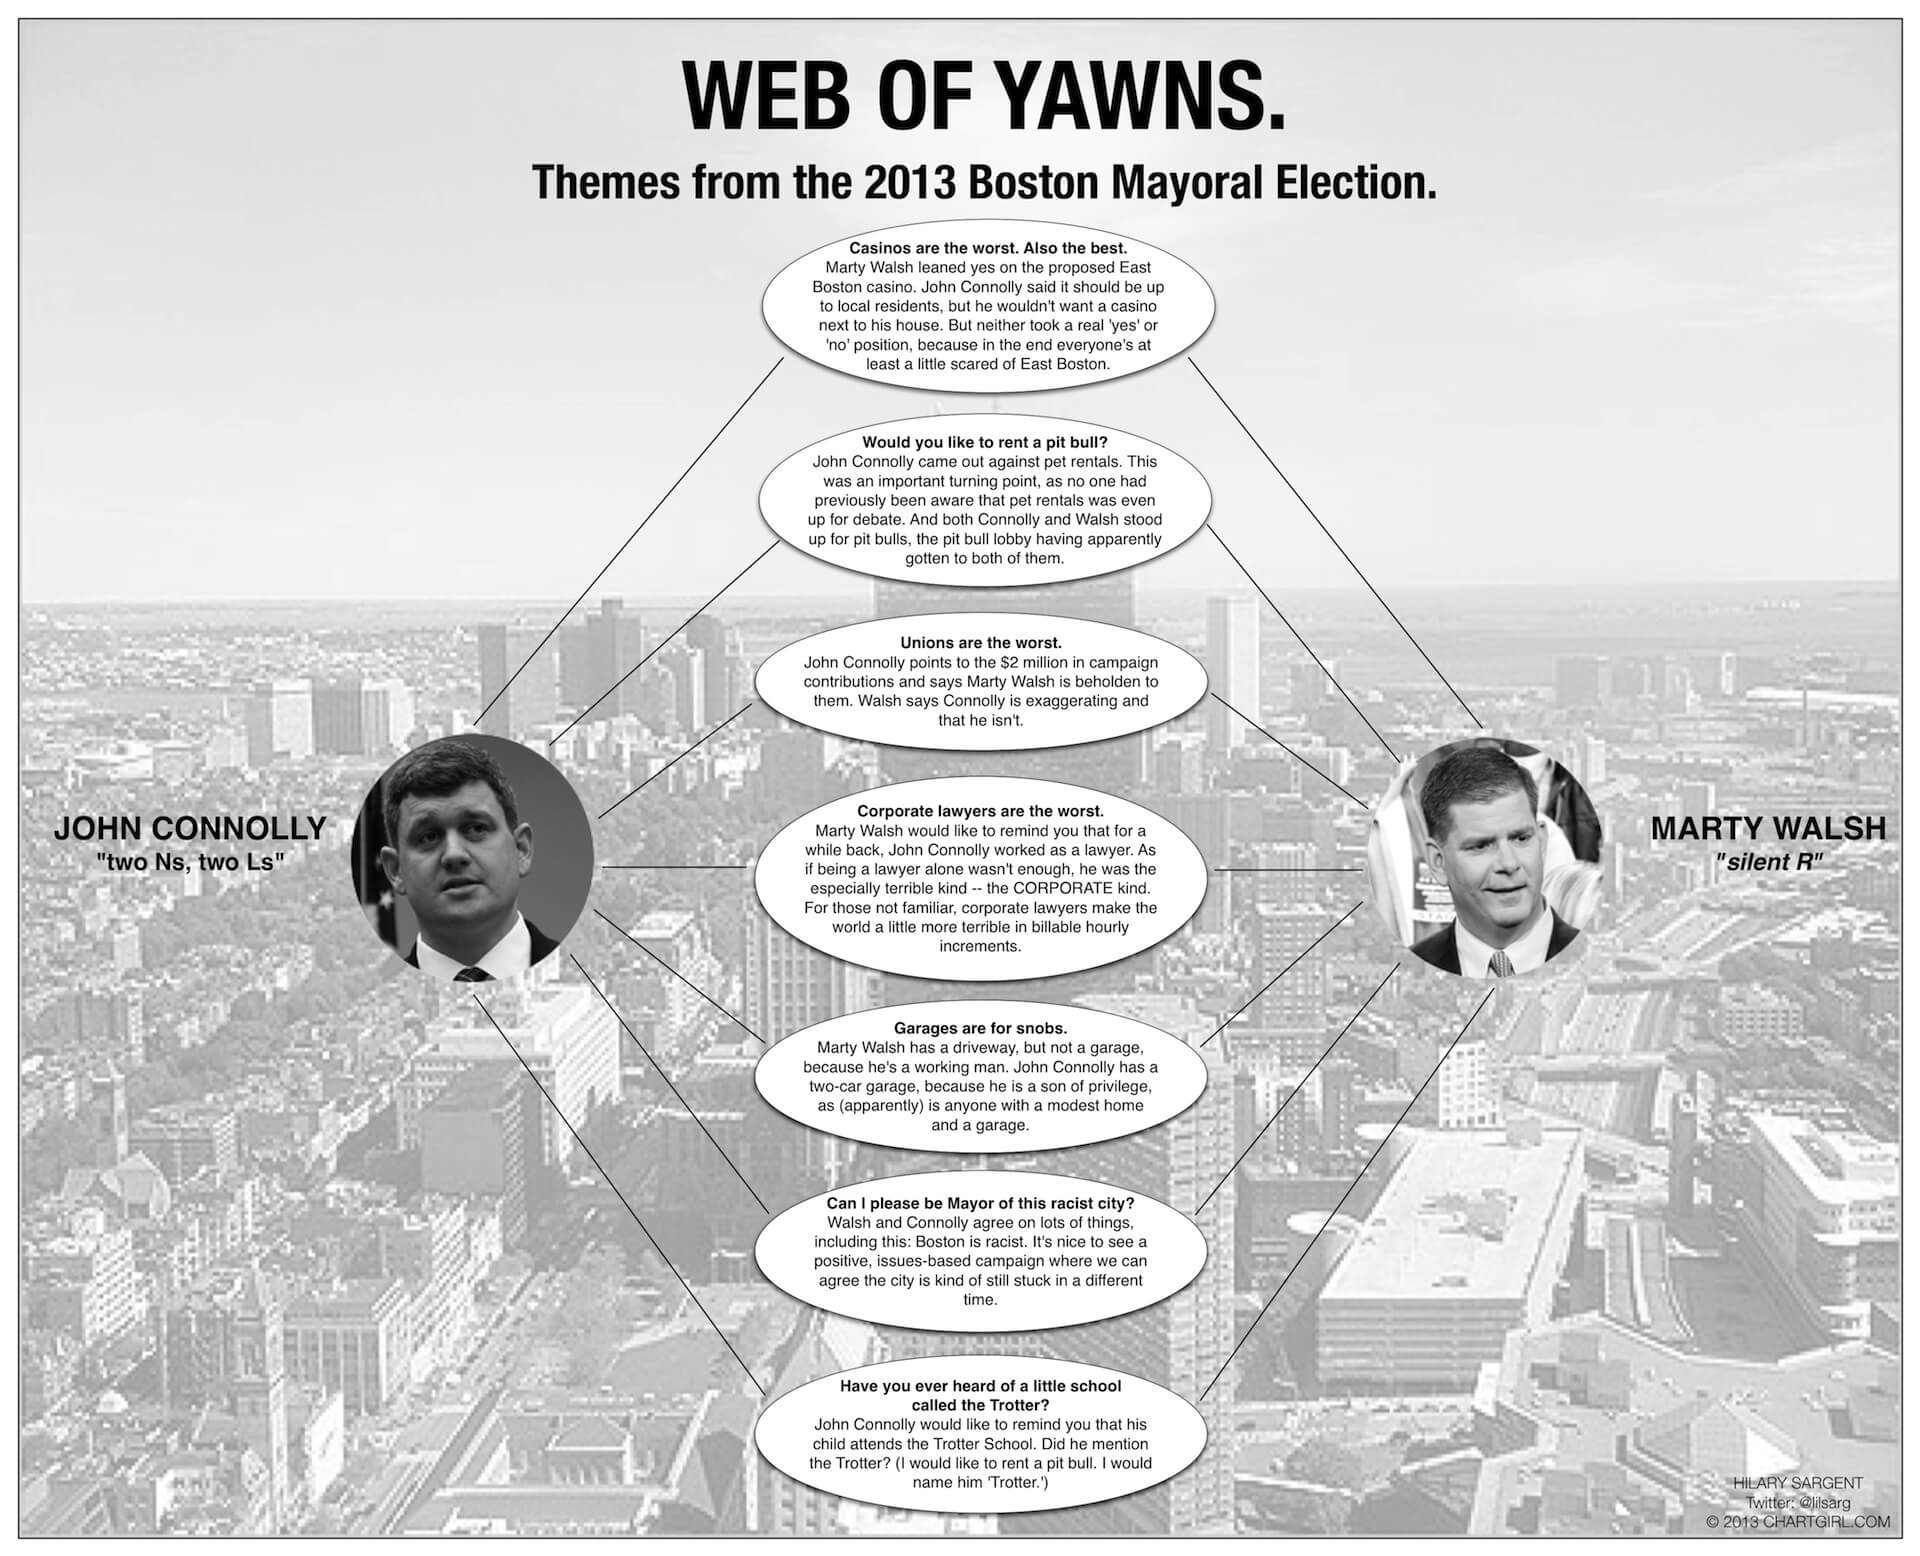 Web of Yawns: Themes from the 2013 Boston Mayoral Election.